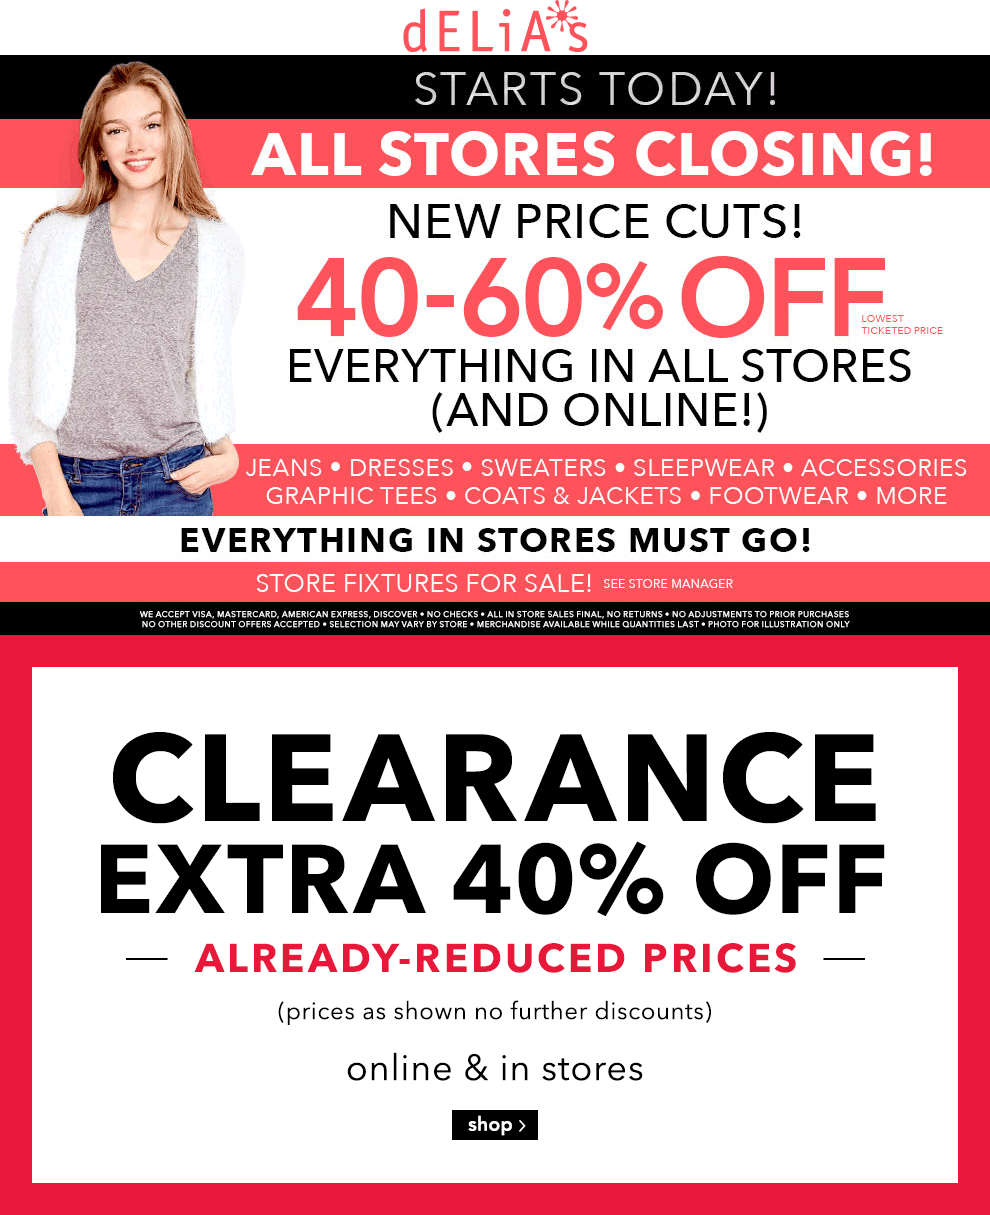 dELiA*s Coupon March 2018 Going out-of-business extra 40-60% off everything at dELiA*s, ditto online